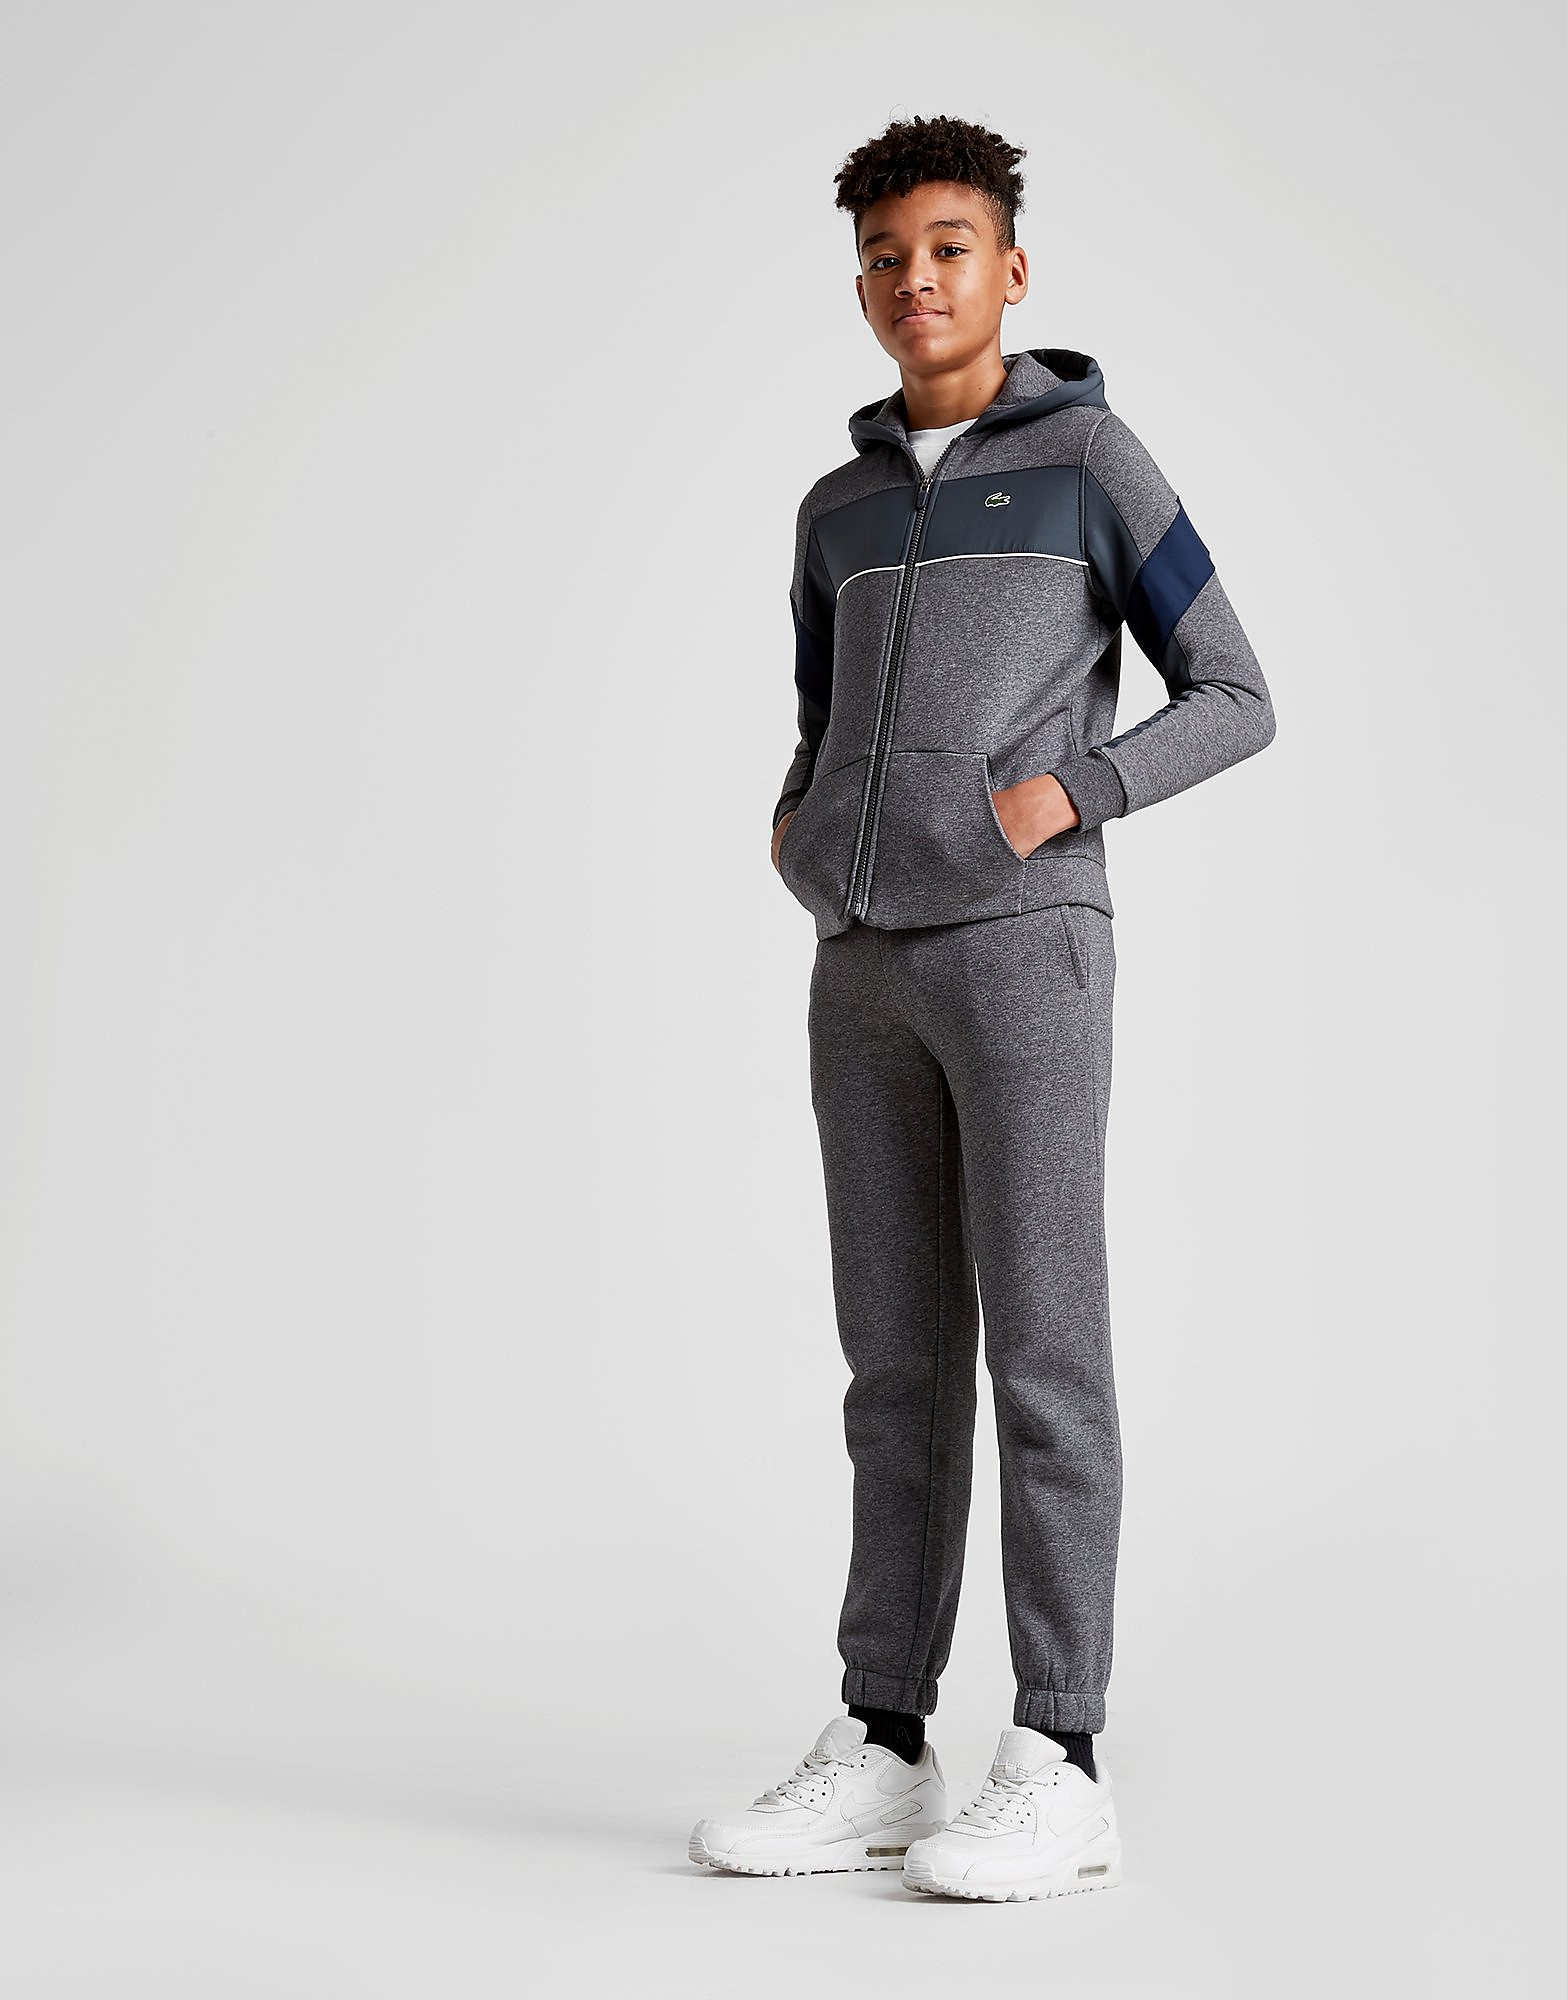 Lacoste Woven Panel Fleece Suit Junior - Grijs - Kind